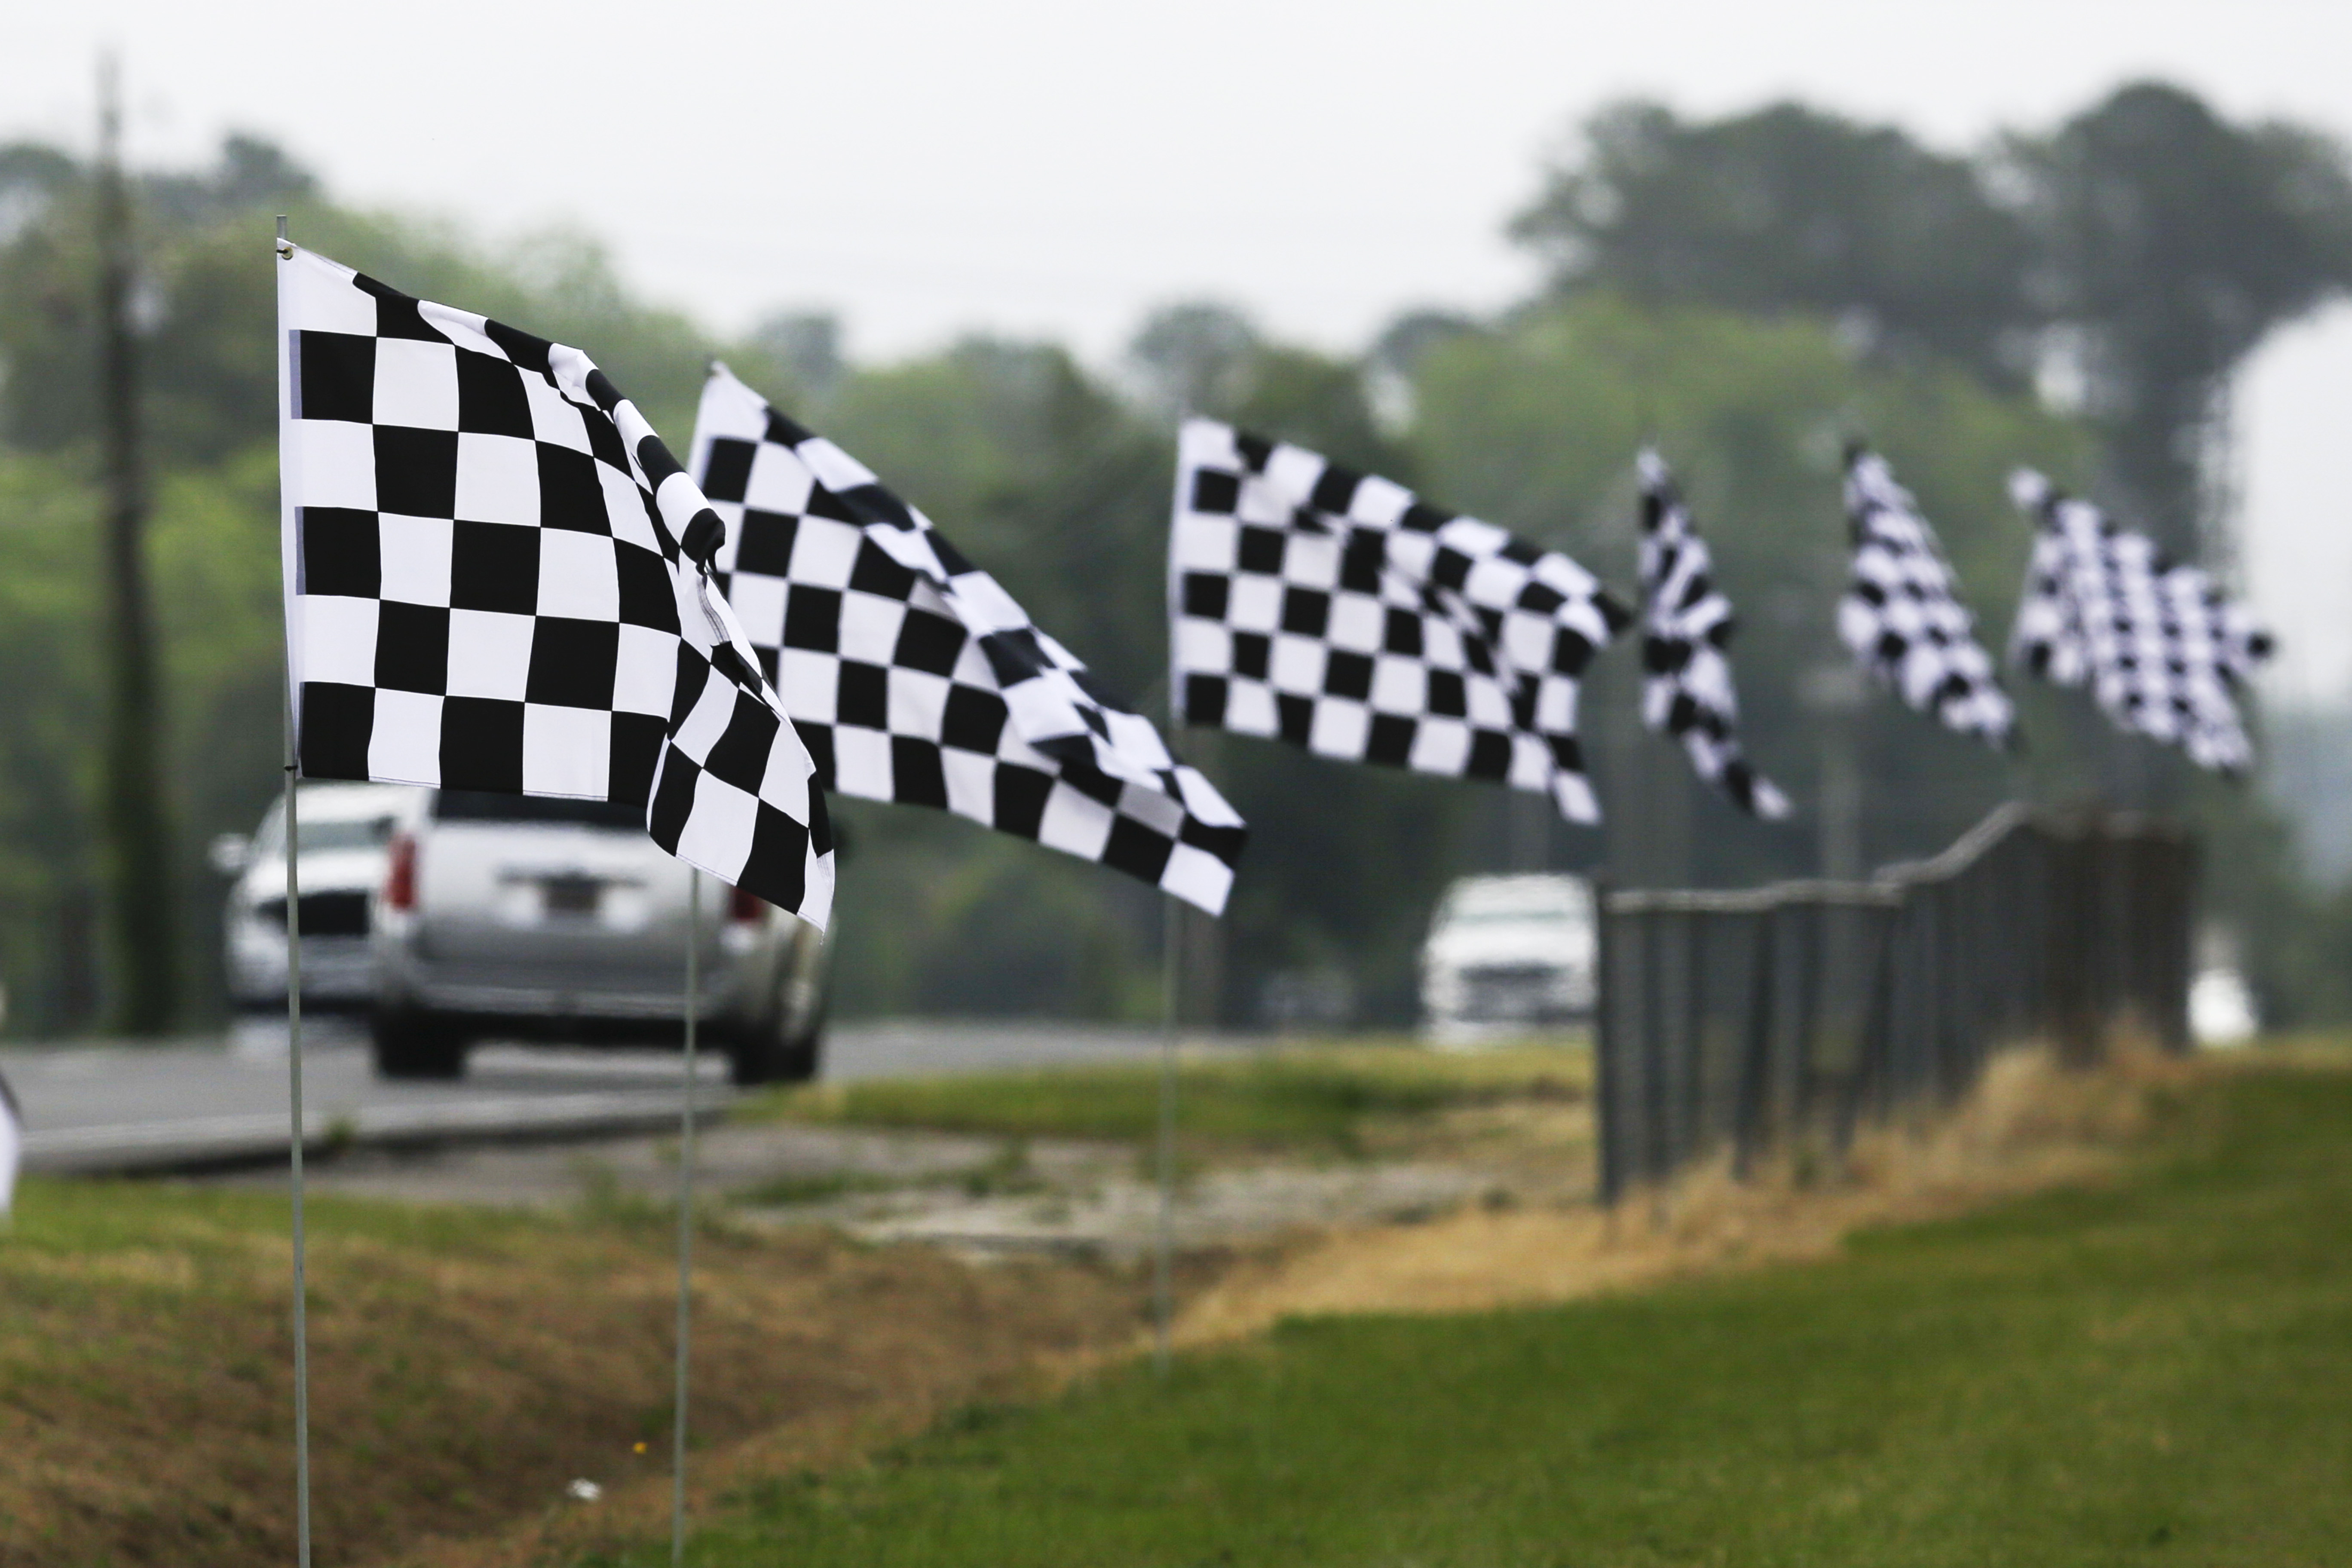 Checkered flags line a street outside Darlington Raceway on May 17, 2020, in Darlington, S.C.